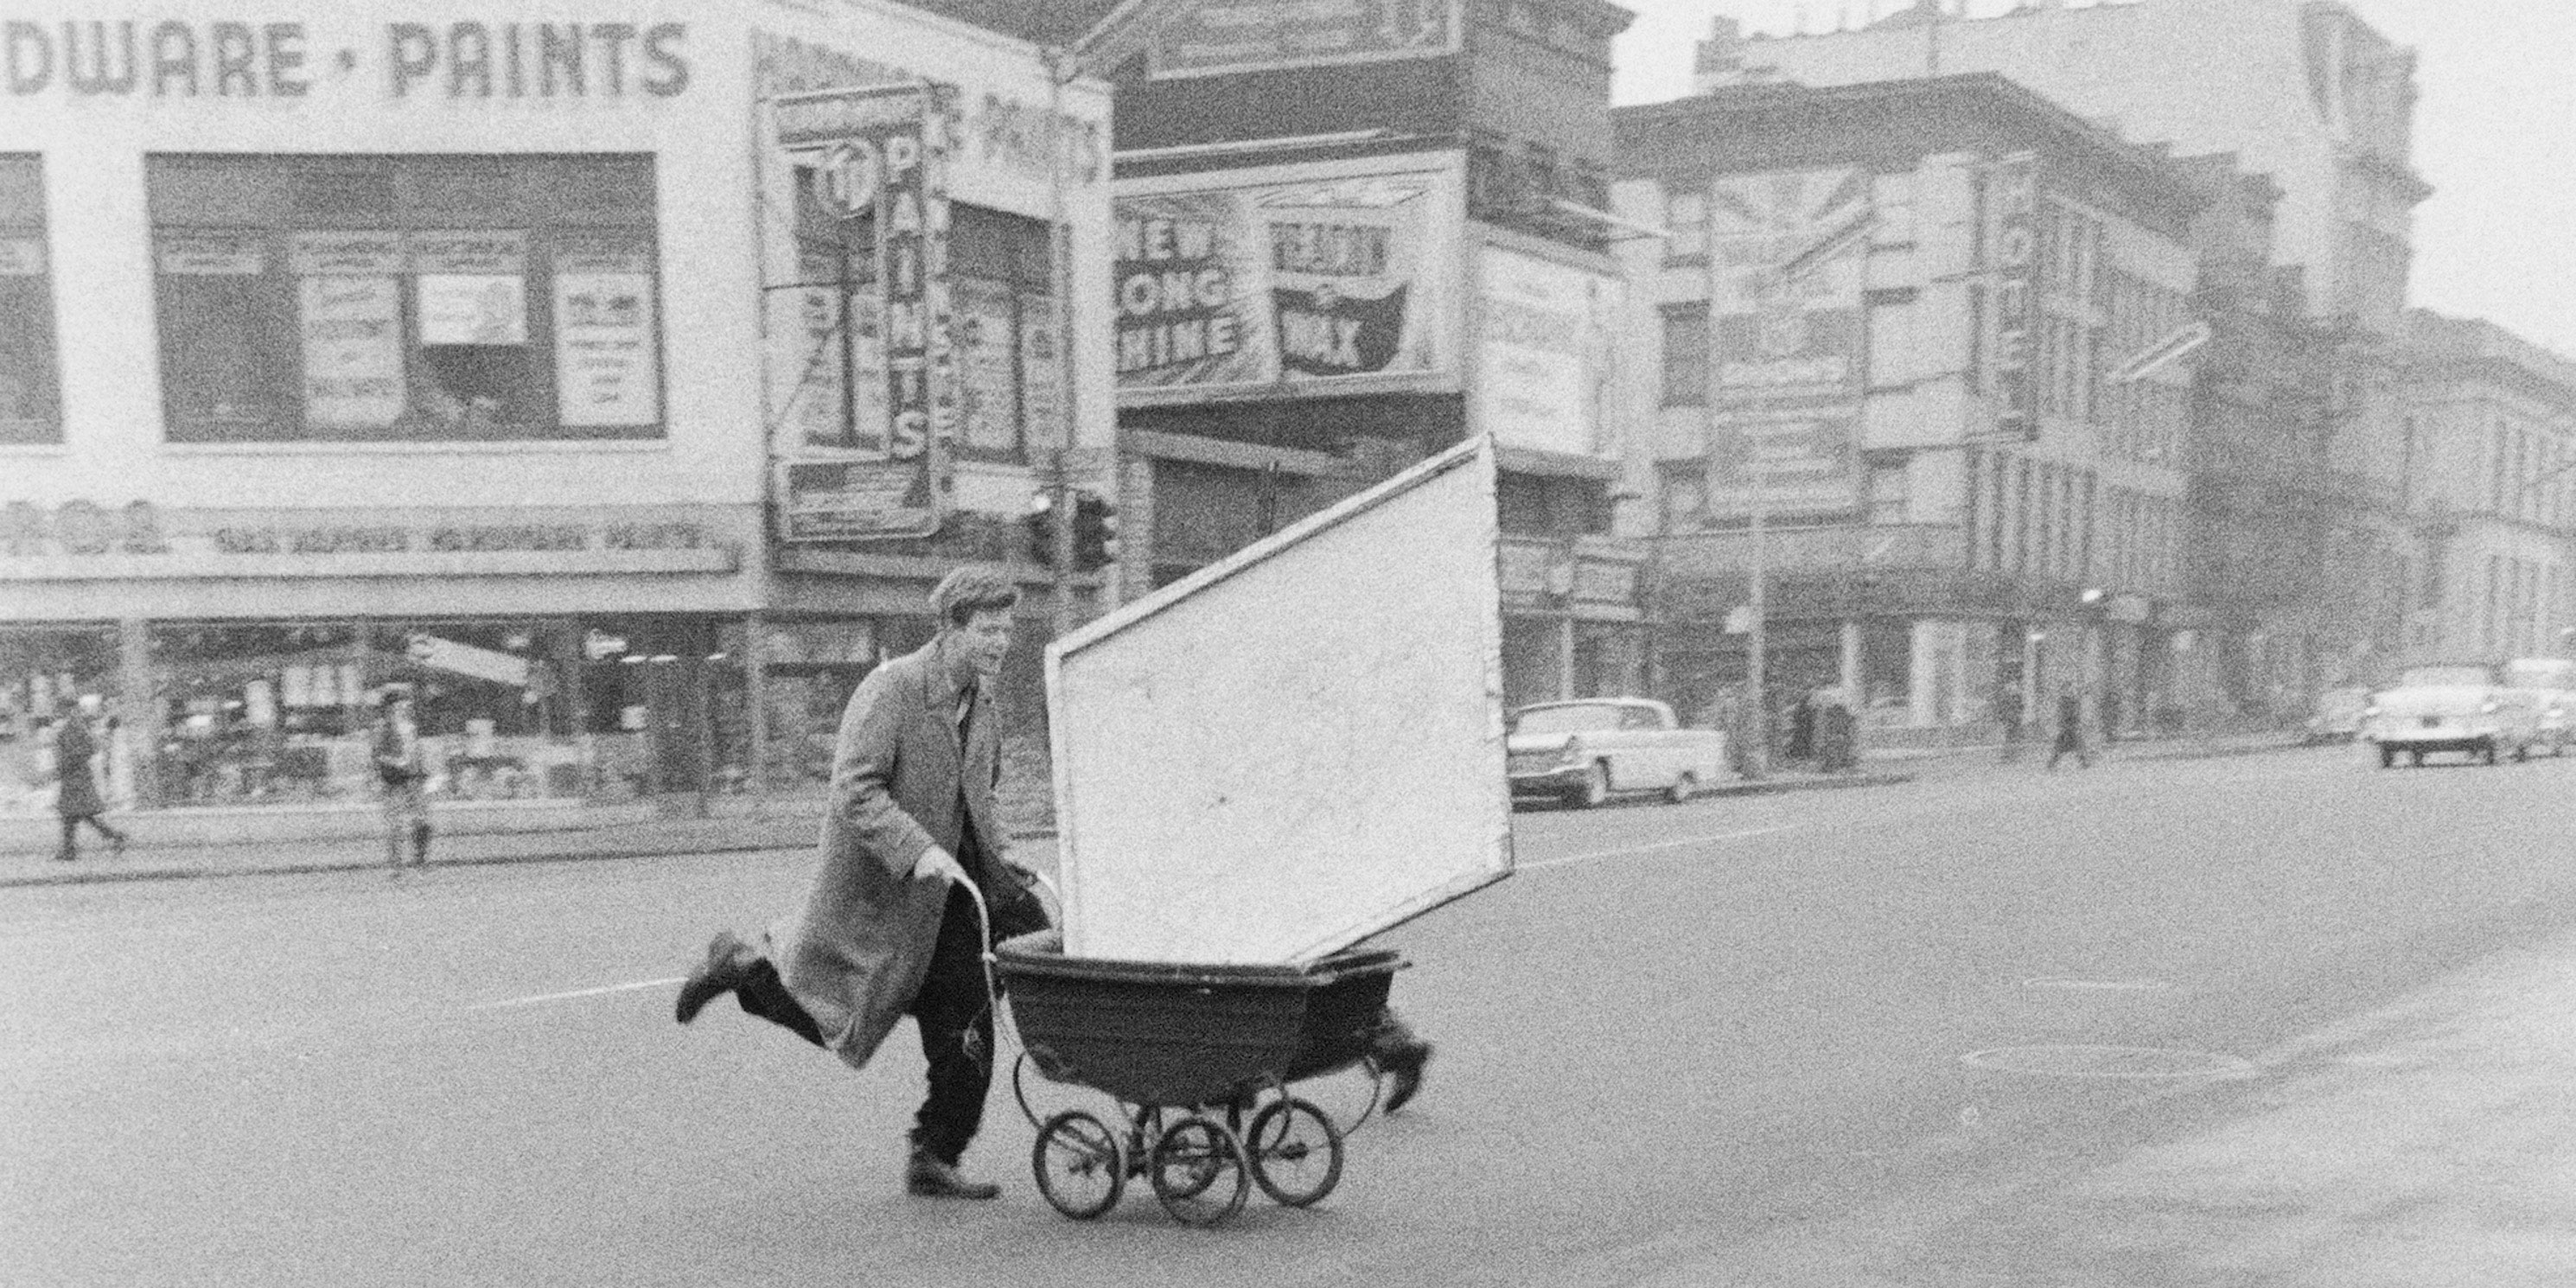 Red Grooms transporting artwork to Reuben Gallery, New York, 1960.